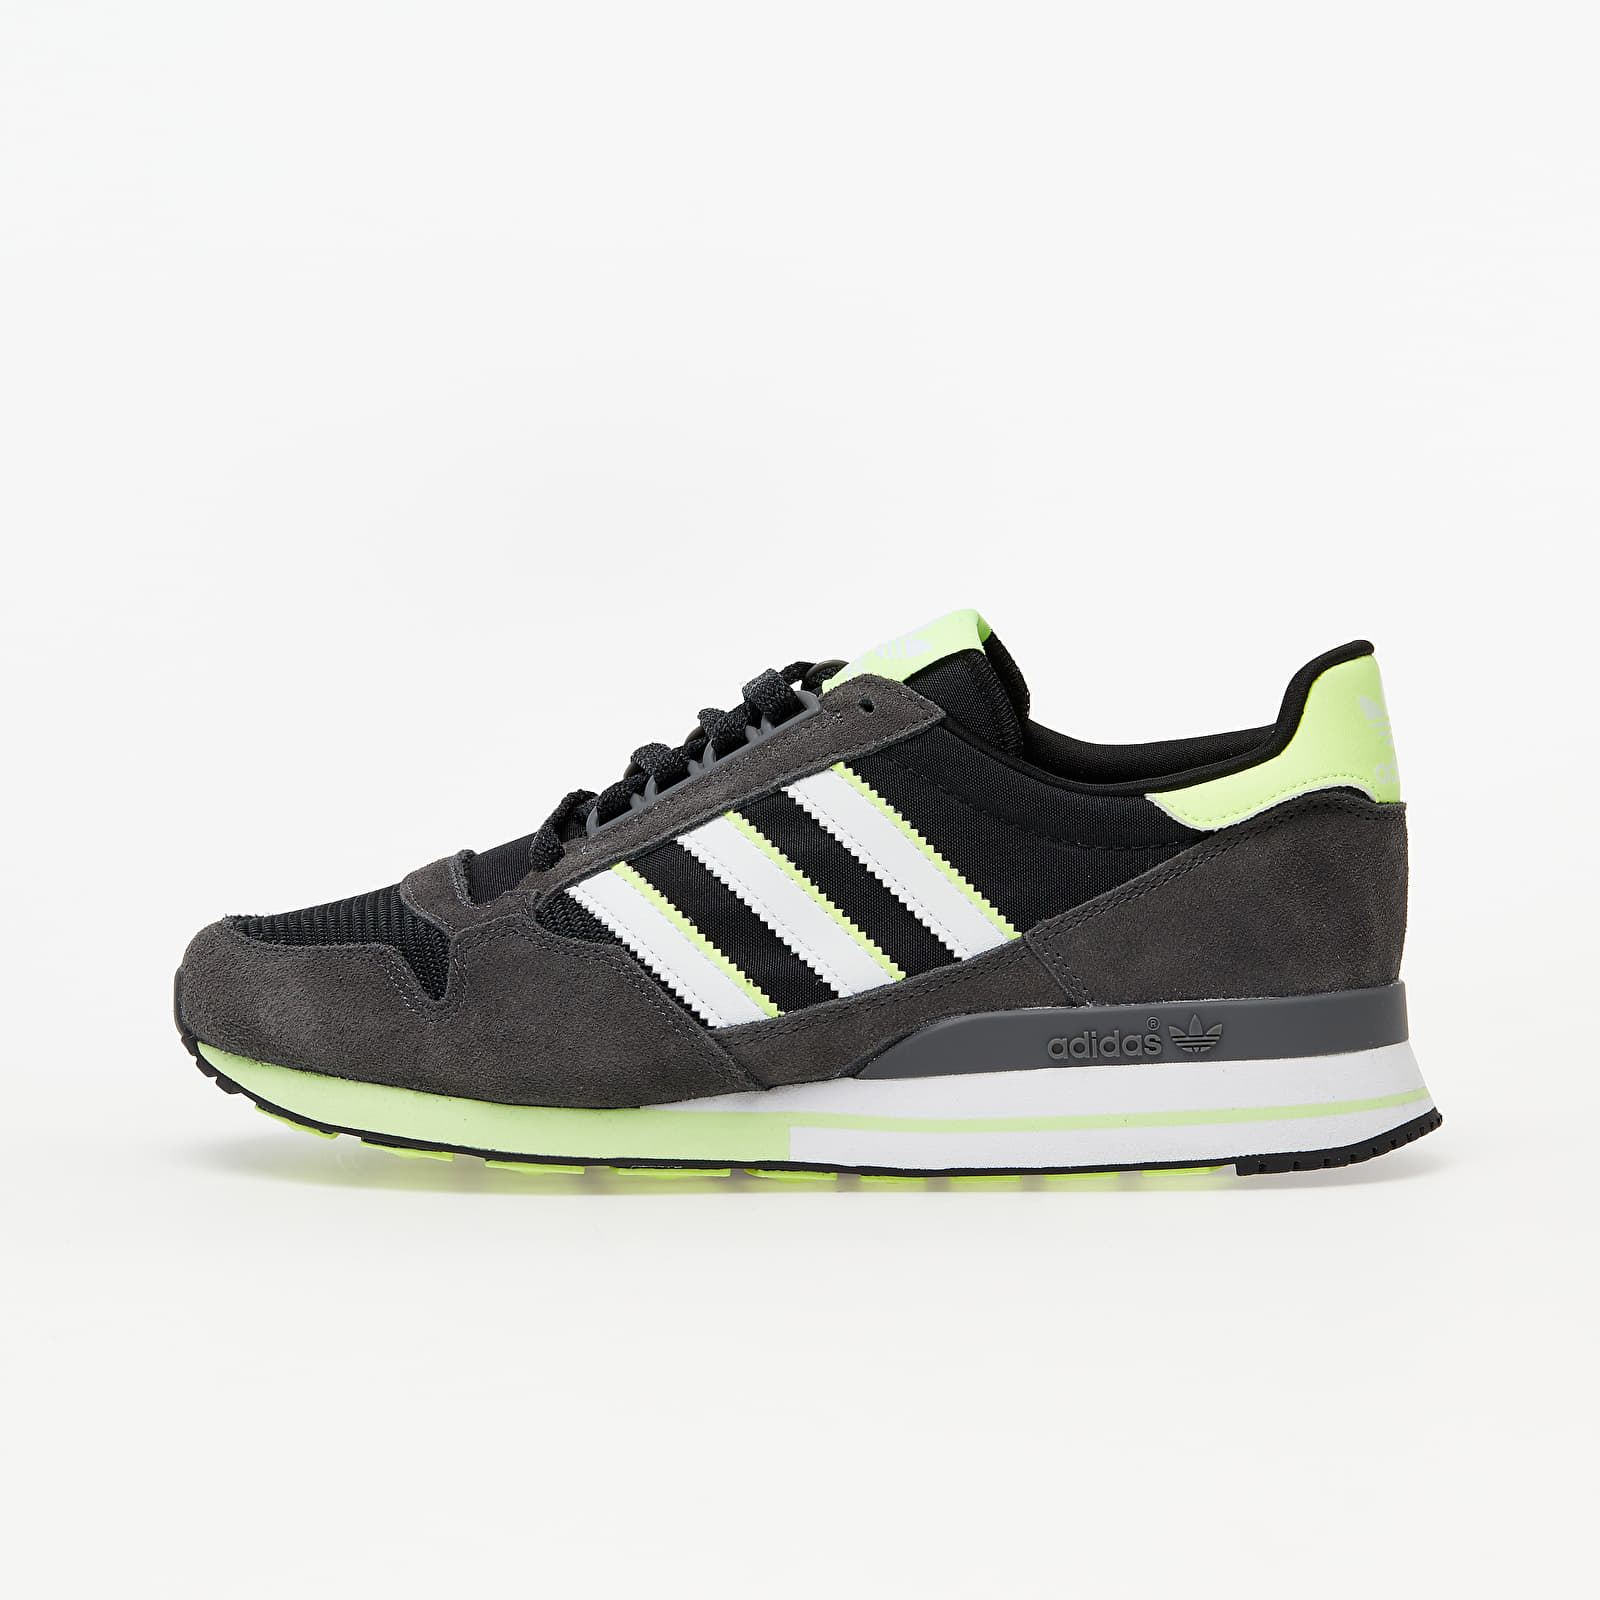 adidas ZX 500 W Grey Six/ Ftw White/ Core Black EUR 38